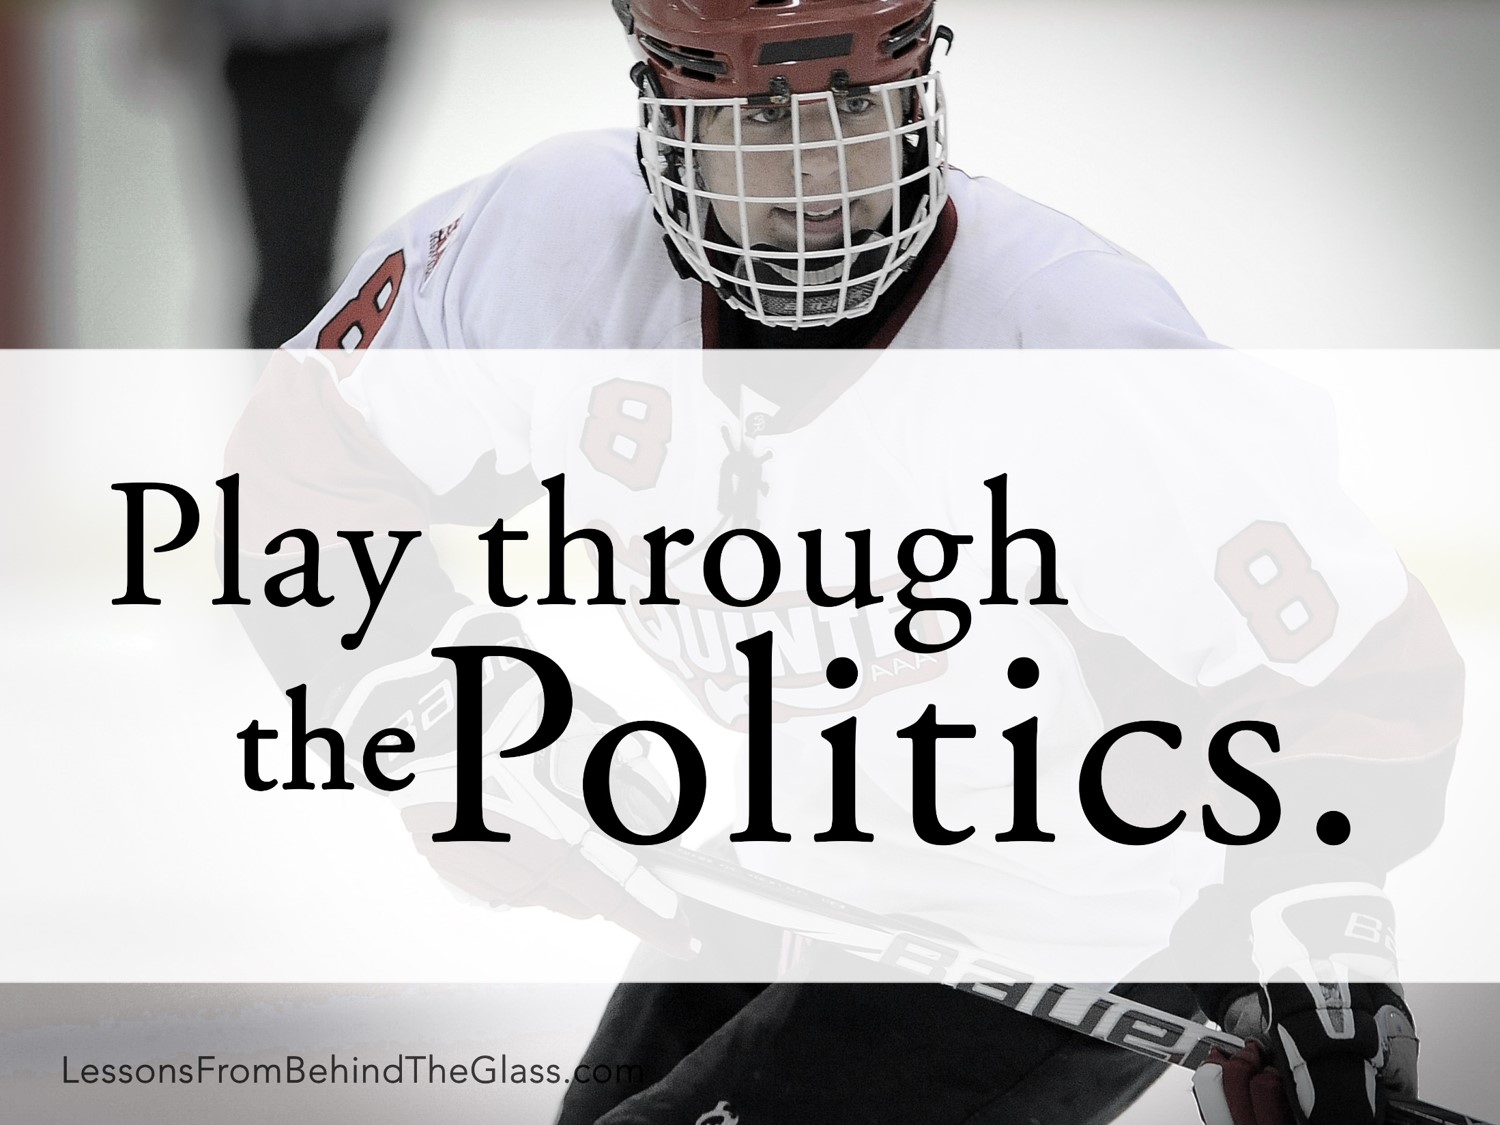 Lesson #8 - Play Through the Politics